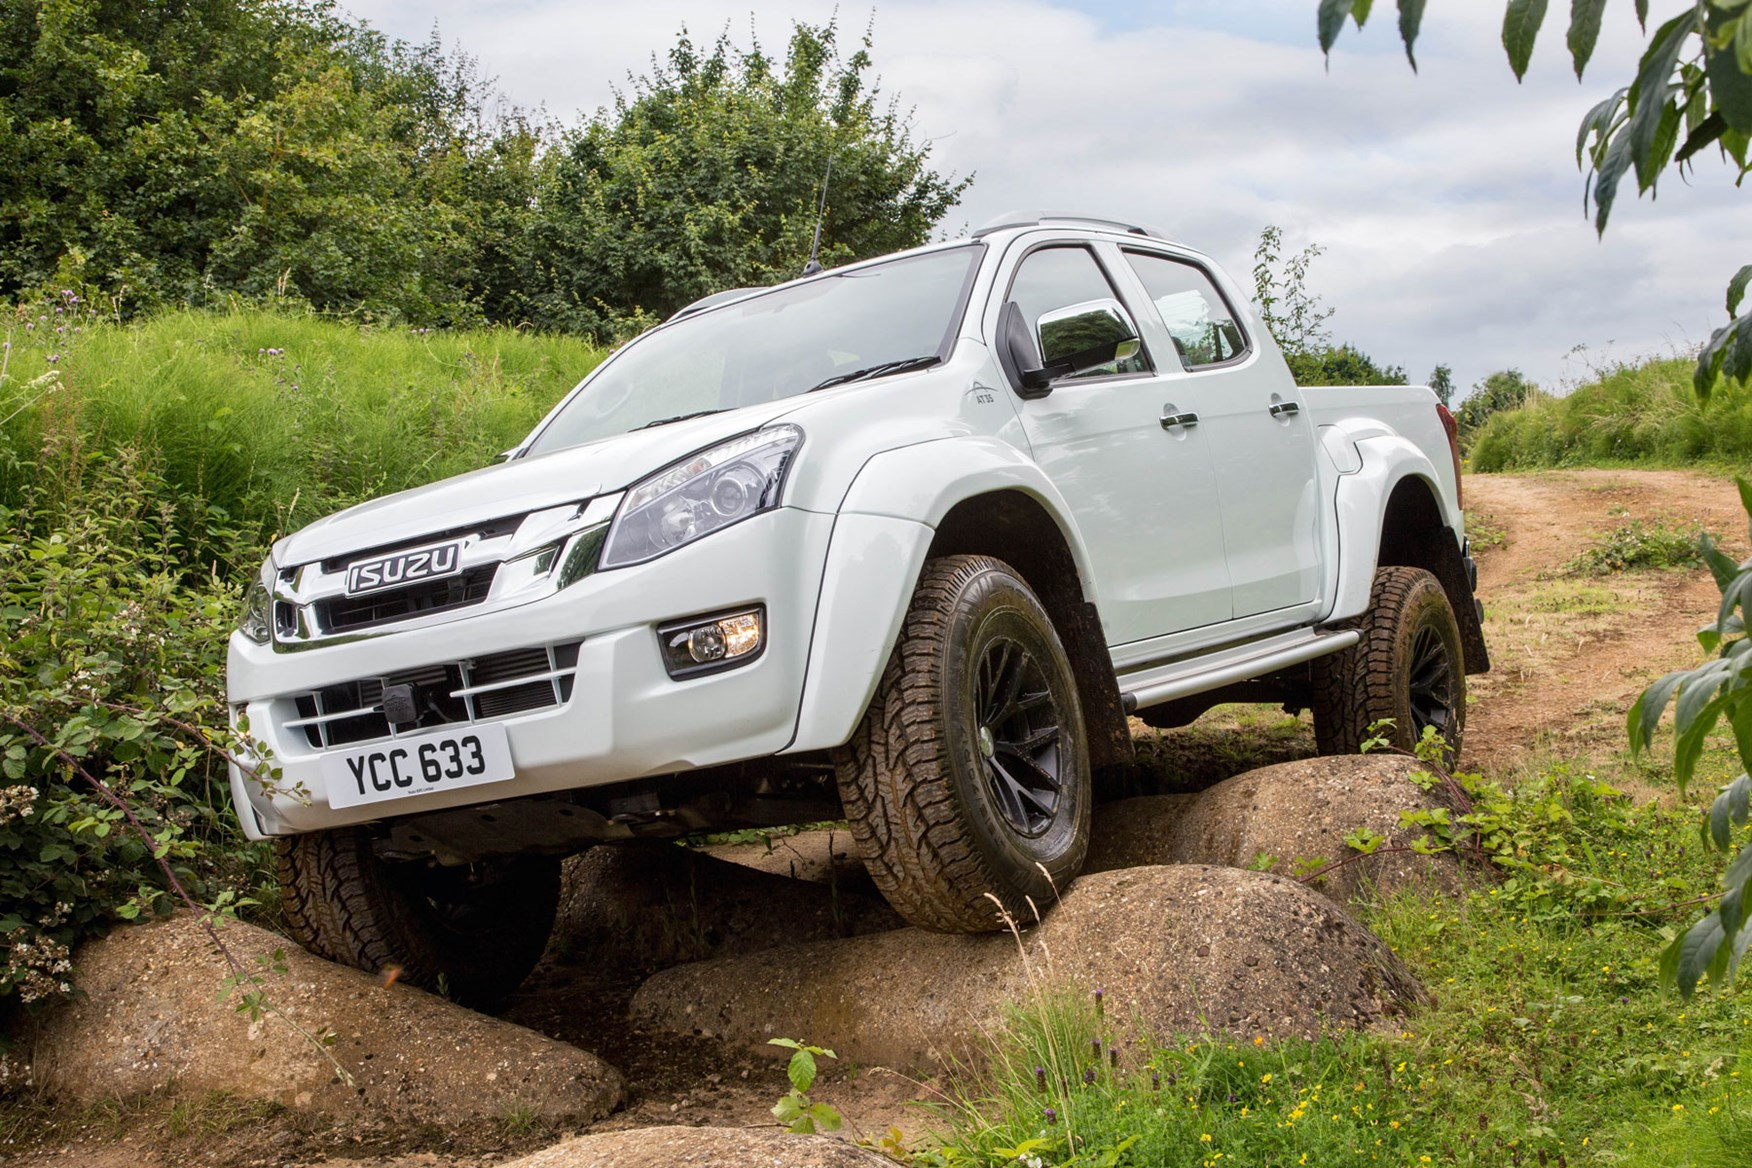 Isuzu D-Max AT35 2.5 review -  front view, climbing over large rocks, white